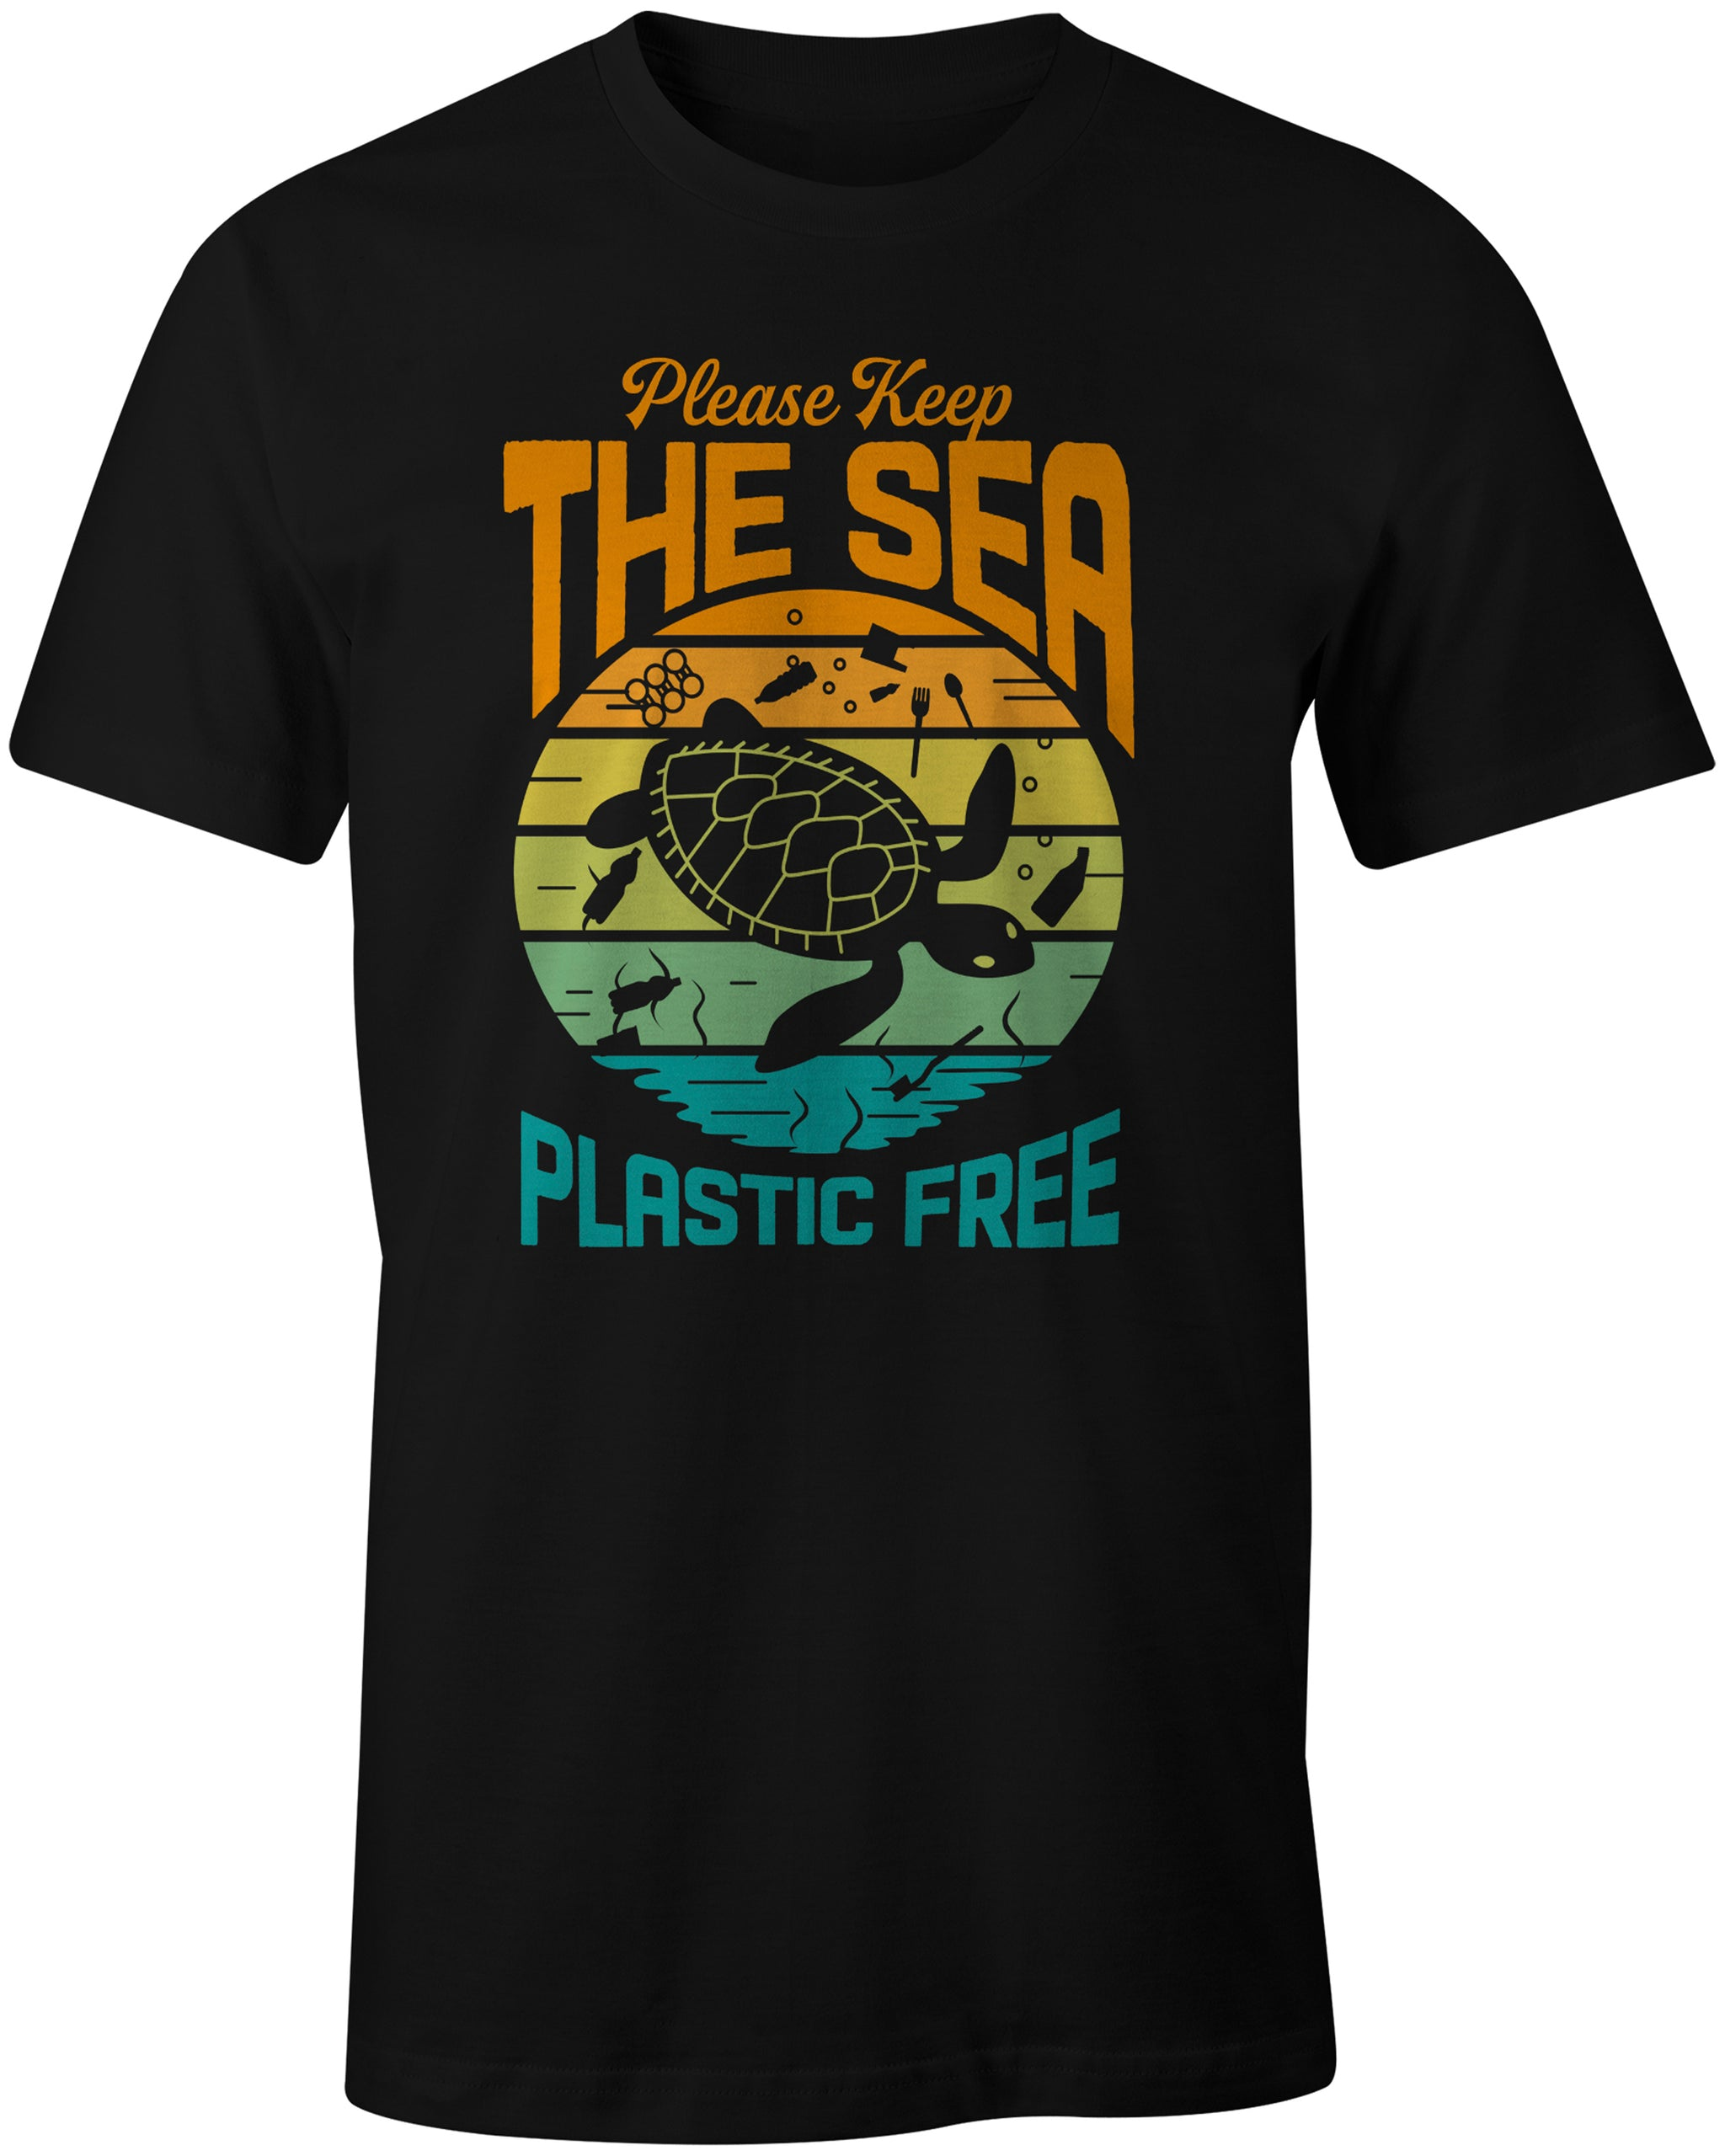 Keep the Sea Plastic Free Tee